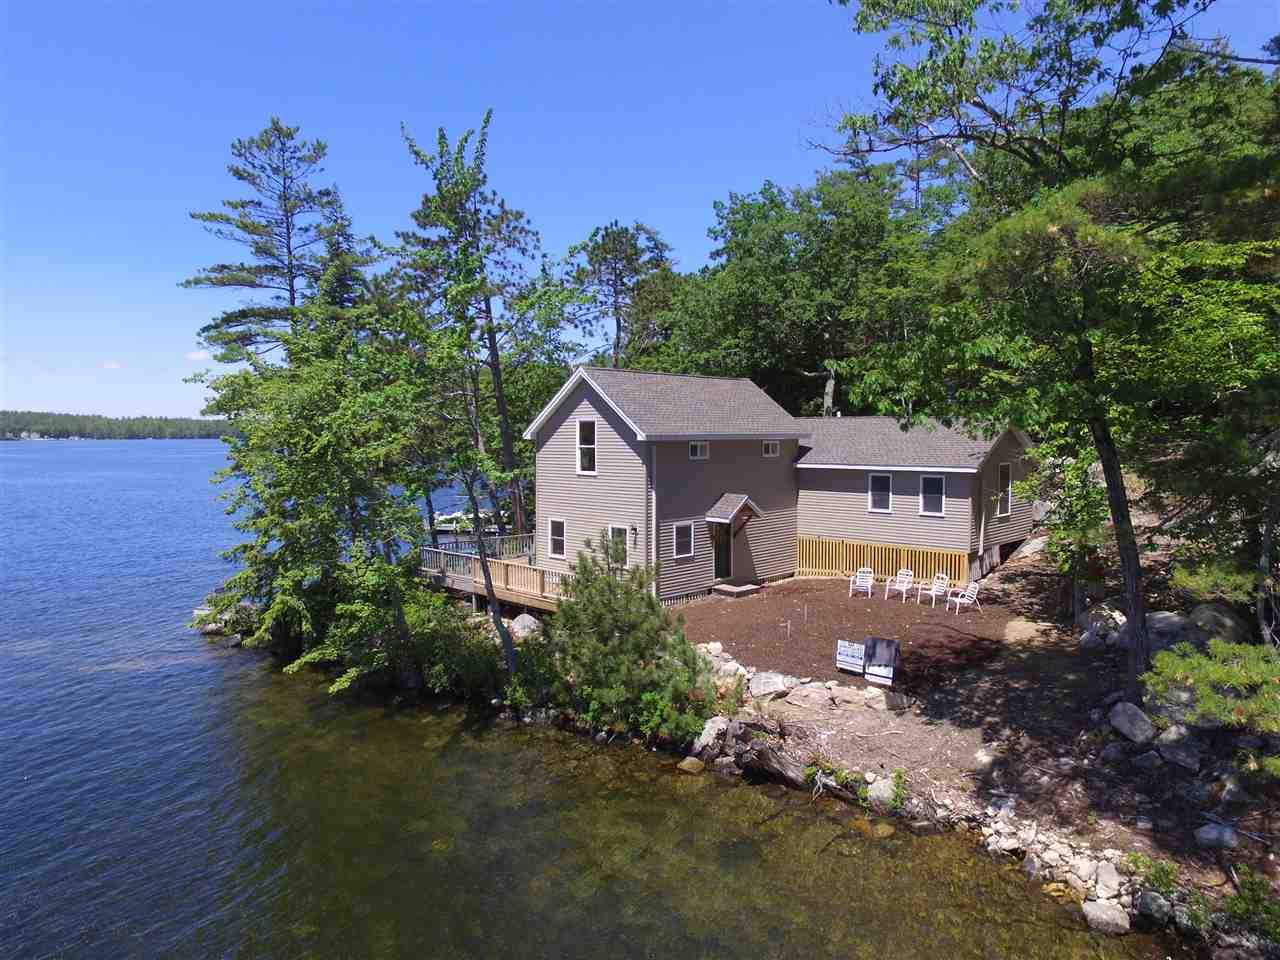 Lake Winnipesaukee waterfront home for sale in Tuftonboro